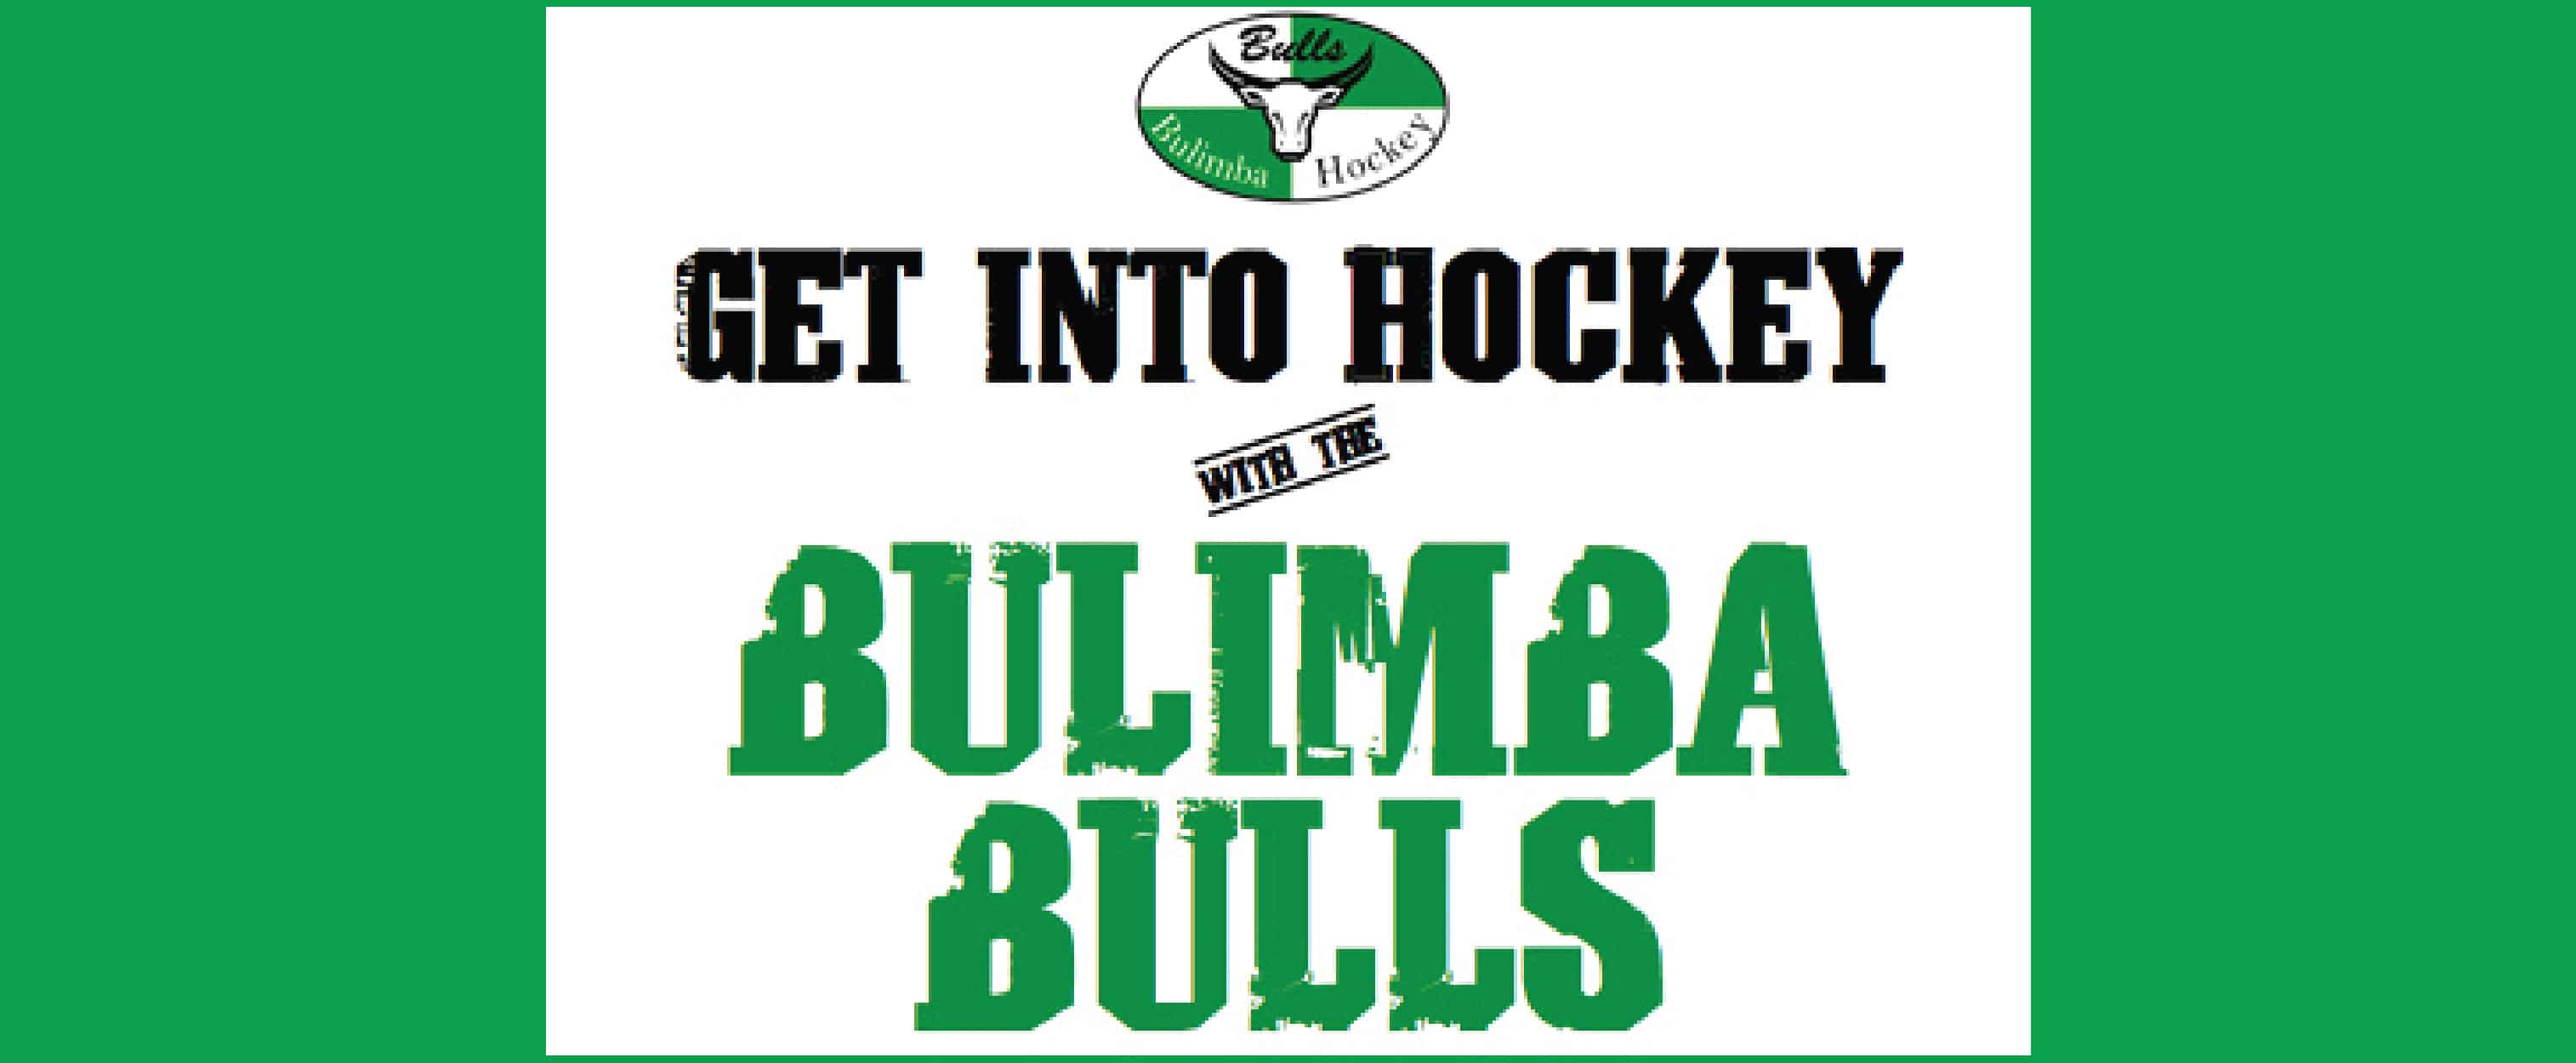 get into hockey with the Bulimba Bulls